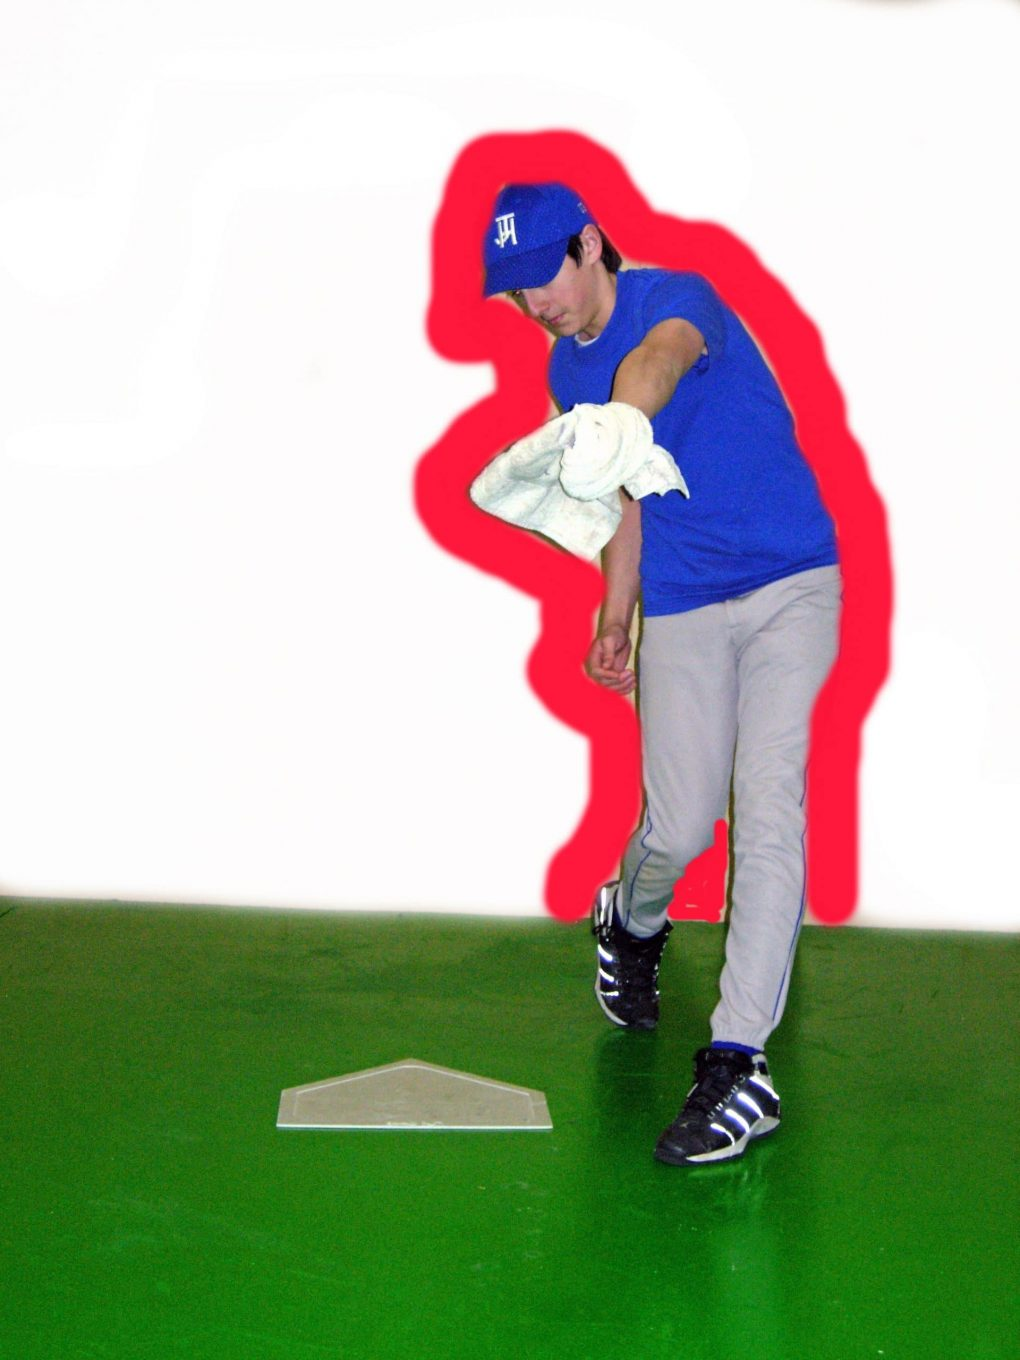 How You Can Teach Baseball Hitting: the Video